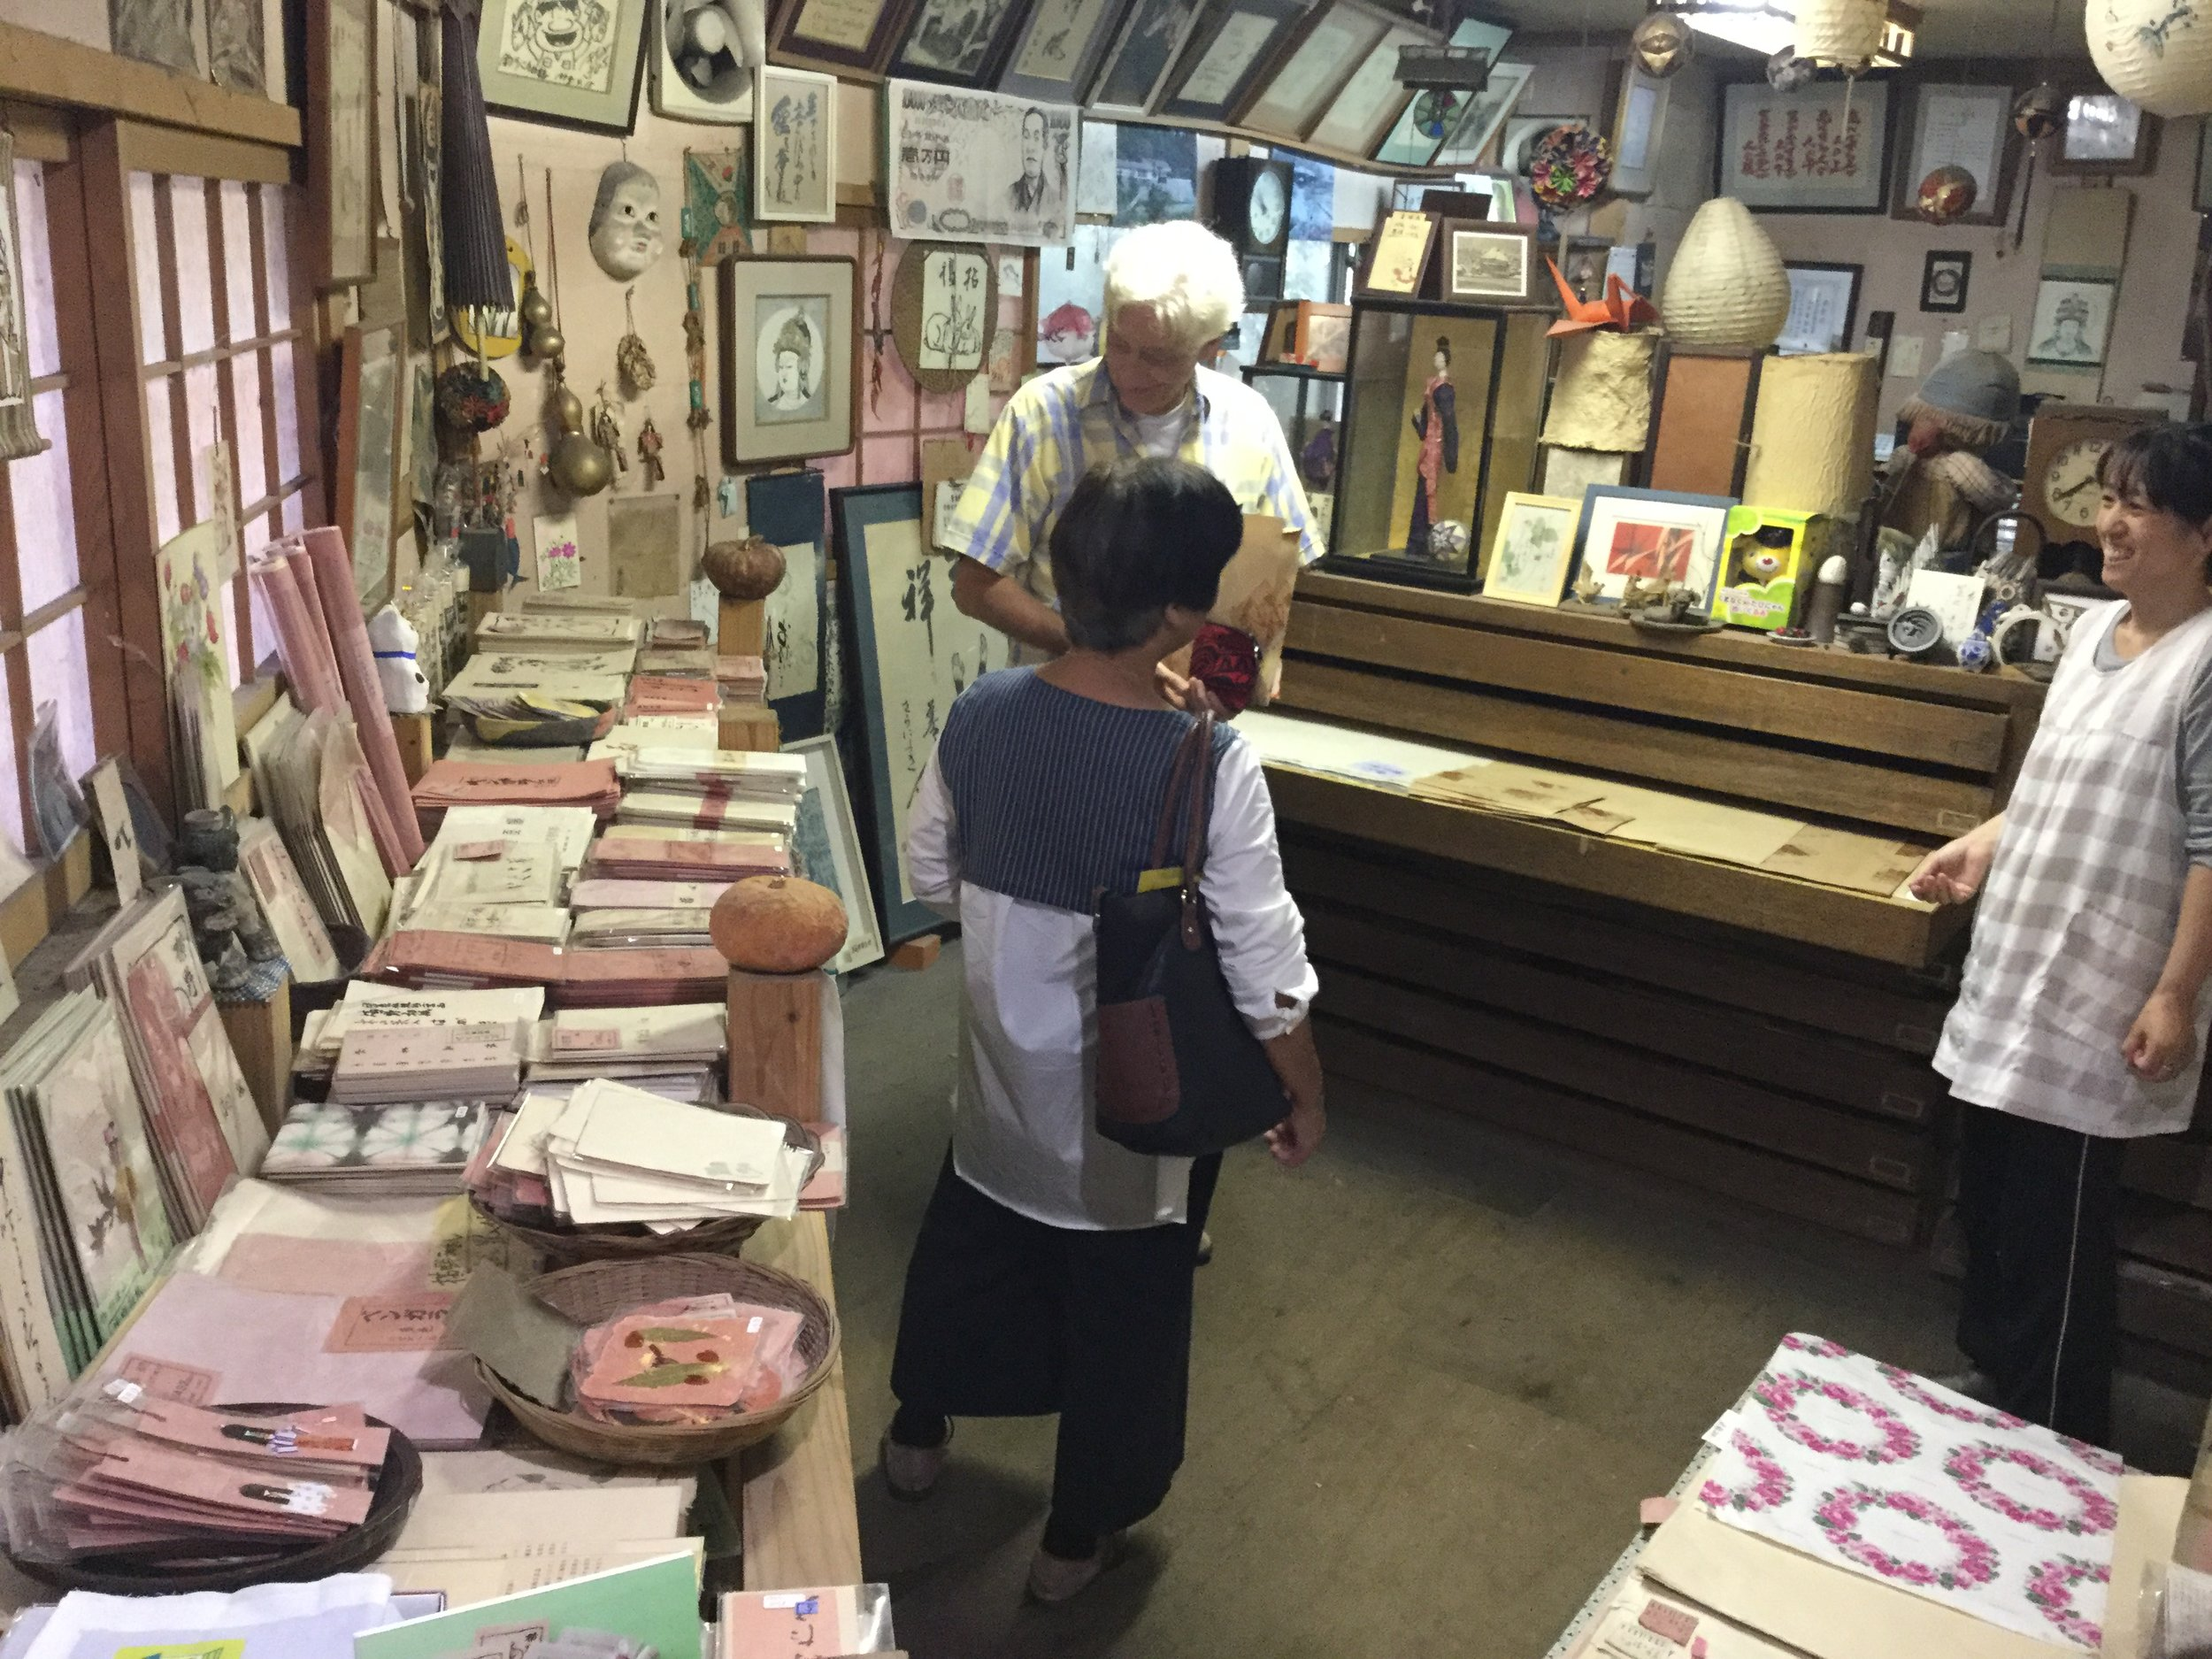 At the back of the workshop was the paper store. We really loved the papers and bought some little cards. We can't carry much but really wanted to support the artistry of their work.   We asked about the red tint - it is achieved by adding some red clay to the pulp.